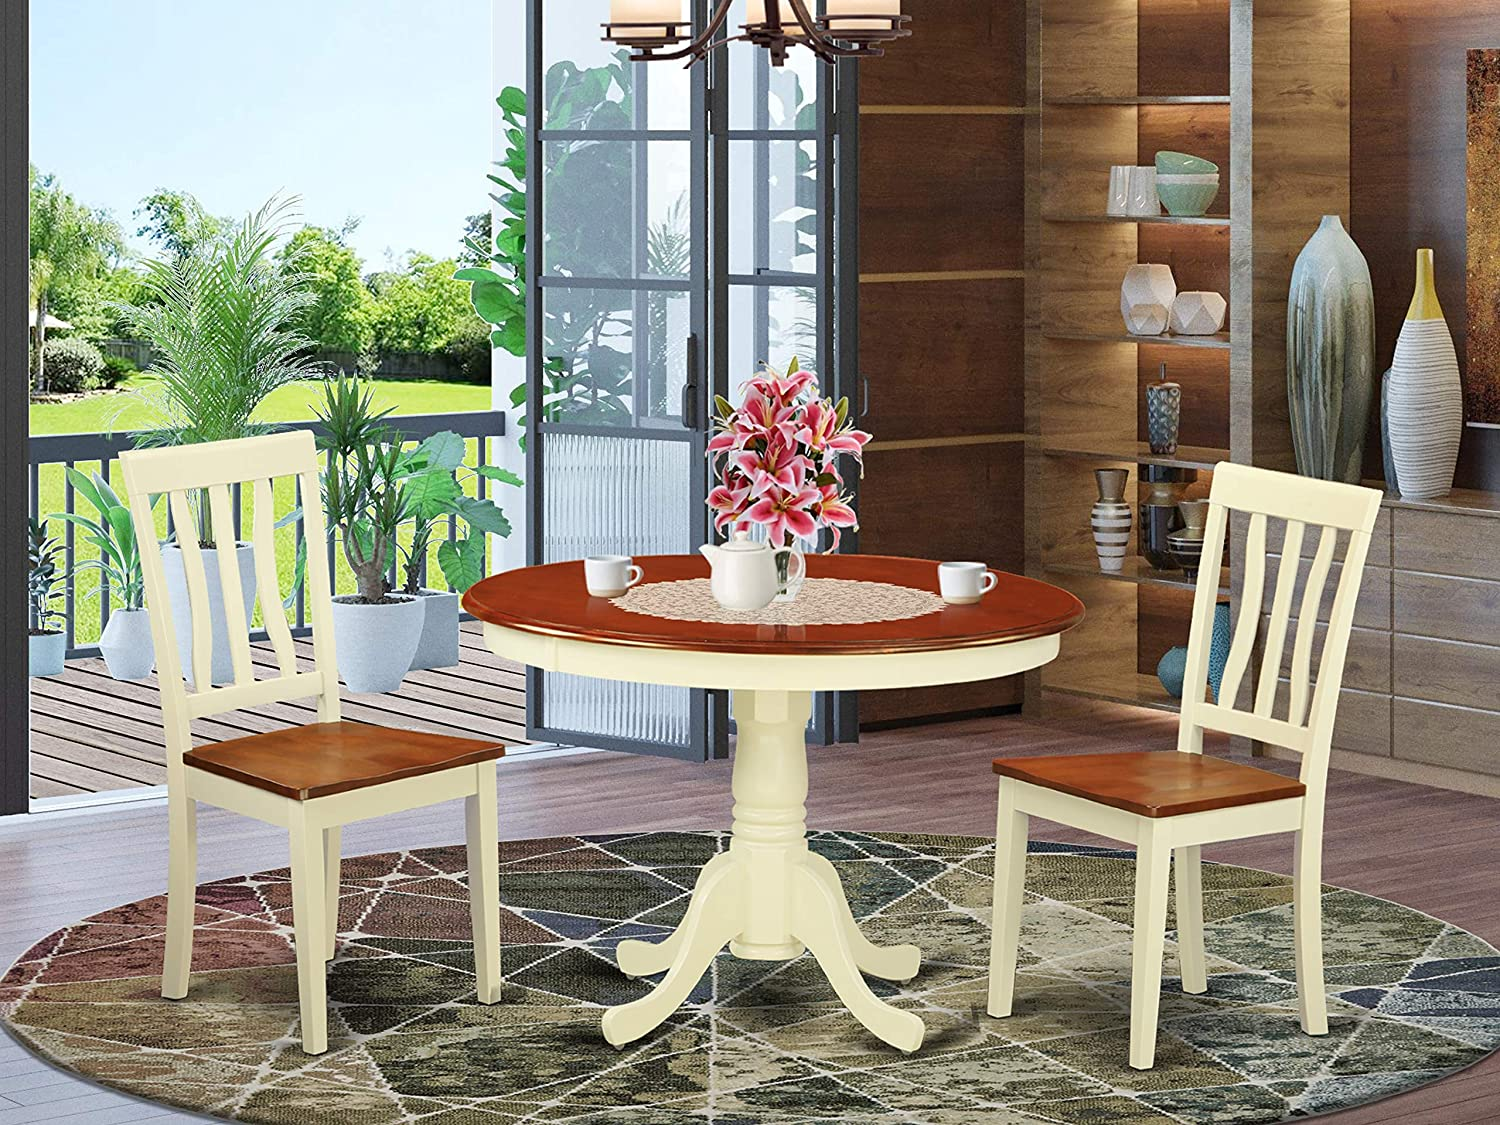 East West Furniture 3-Piece Dining Room Table Set Included a Round Table and 2 Wood Kitchen Chairs - Cherry Solid Wood Dining Chairs Seat & Slatted Back - Buttermilk Finish